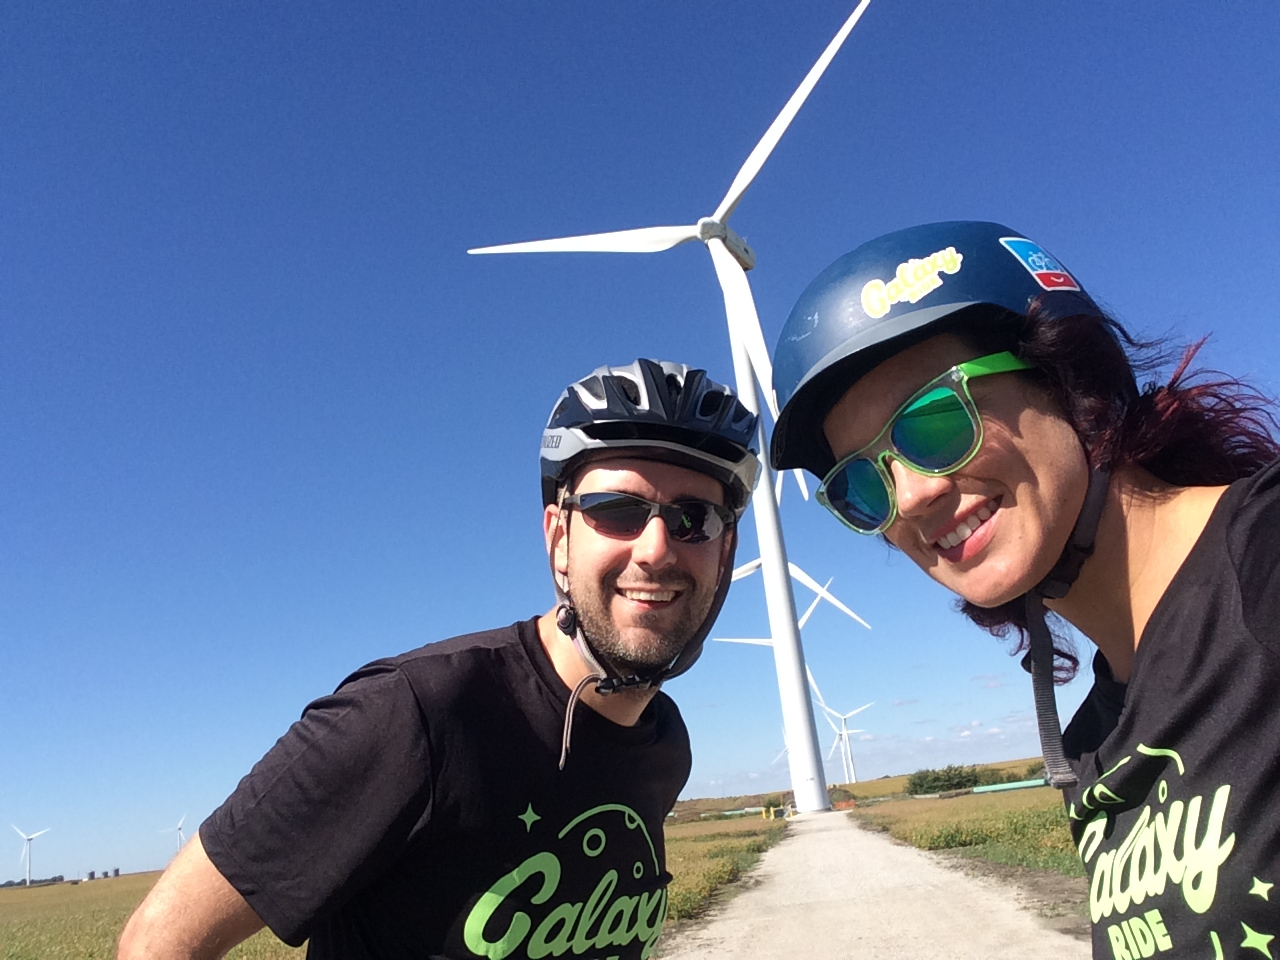 Cyclists beware: while wind turbines look cool, they also sometimes mean headwind.